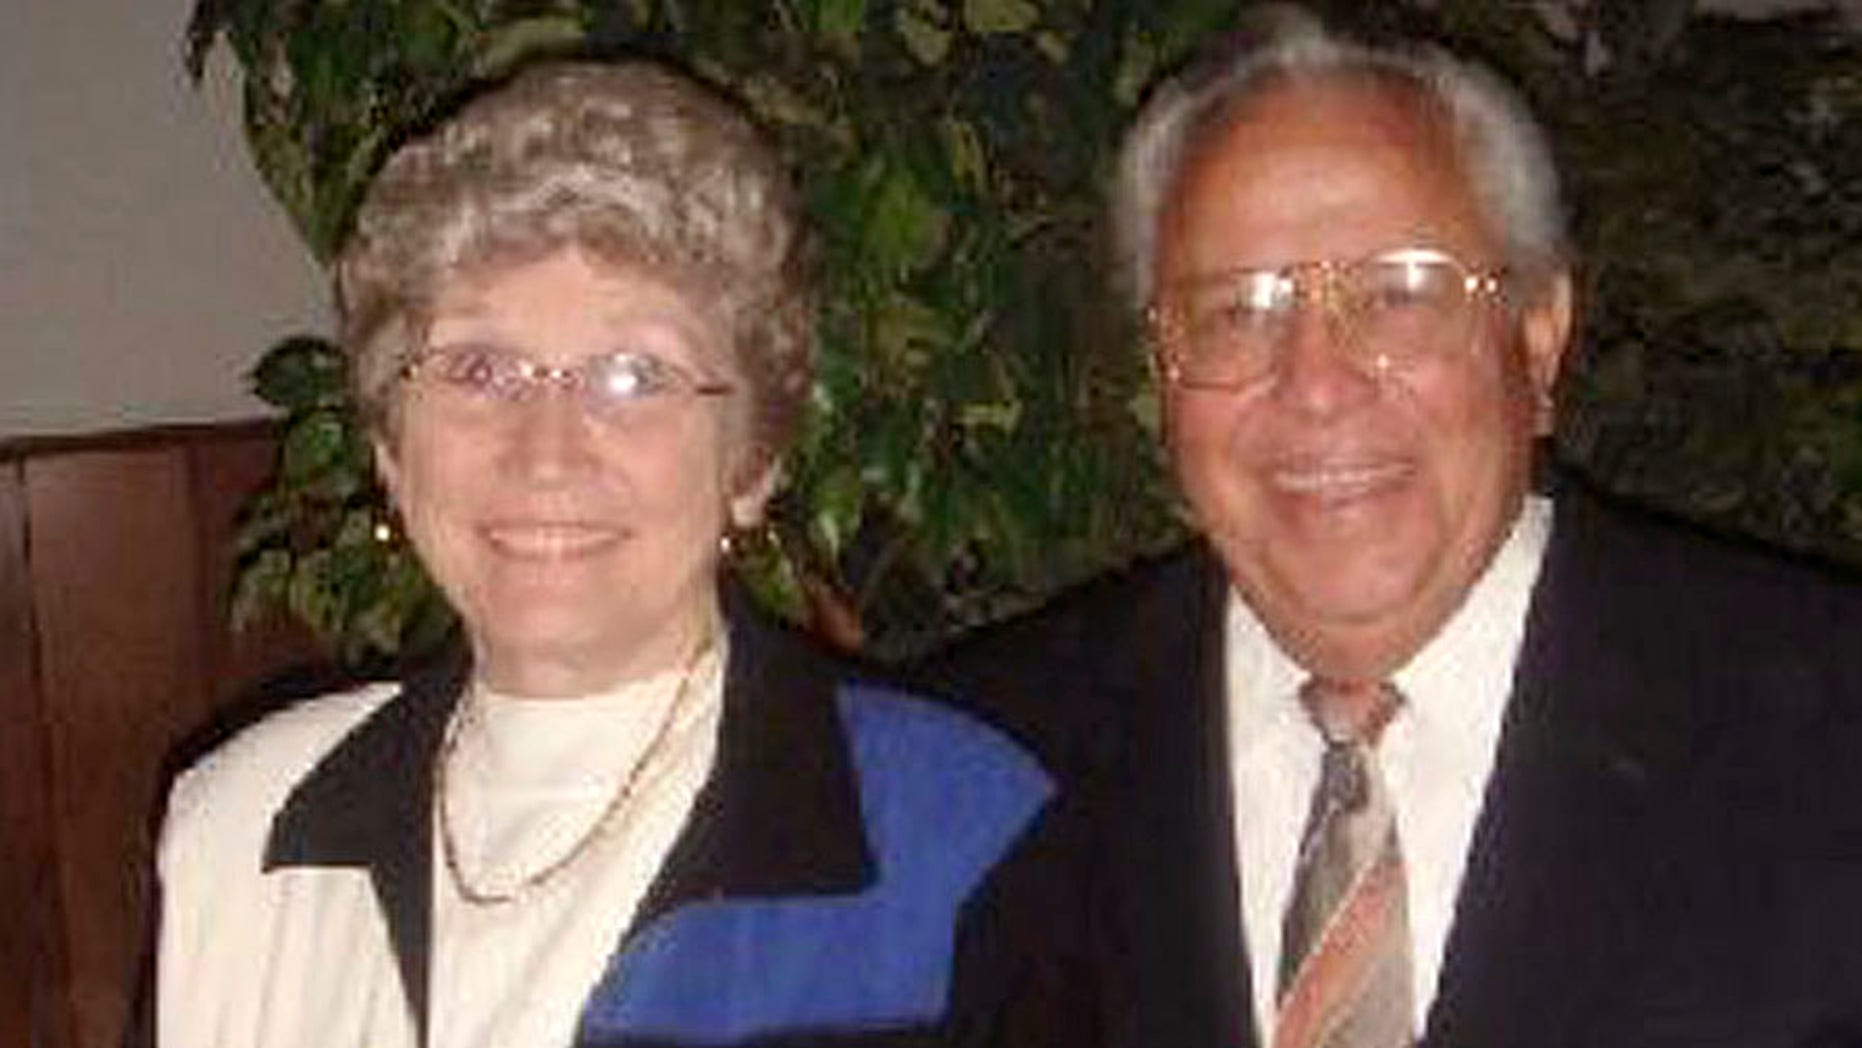 John Casias, right, and his wife Wanda Casias are shown in this undated photo provided by the Casias family.  The couple from Texas who moved to a violence-plagued area of northern Mexico to run a Baptist church, were found slain at their ransacked home Tuesday, Feb 1, 2011, in Mexico. Their son, Shawn Casias said he discovered the body of his mother when he went to their home in the town of Santiago to pick up a trailer. (AP Photo/Casias Family photo)